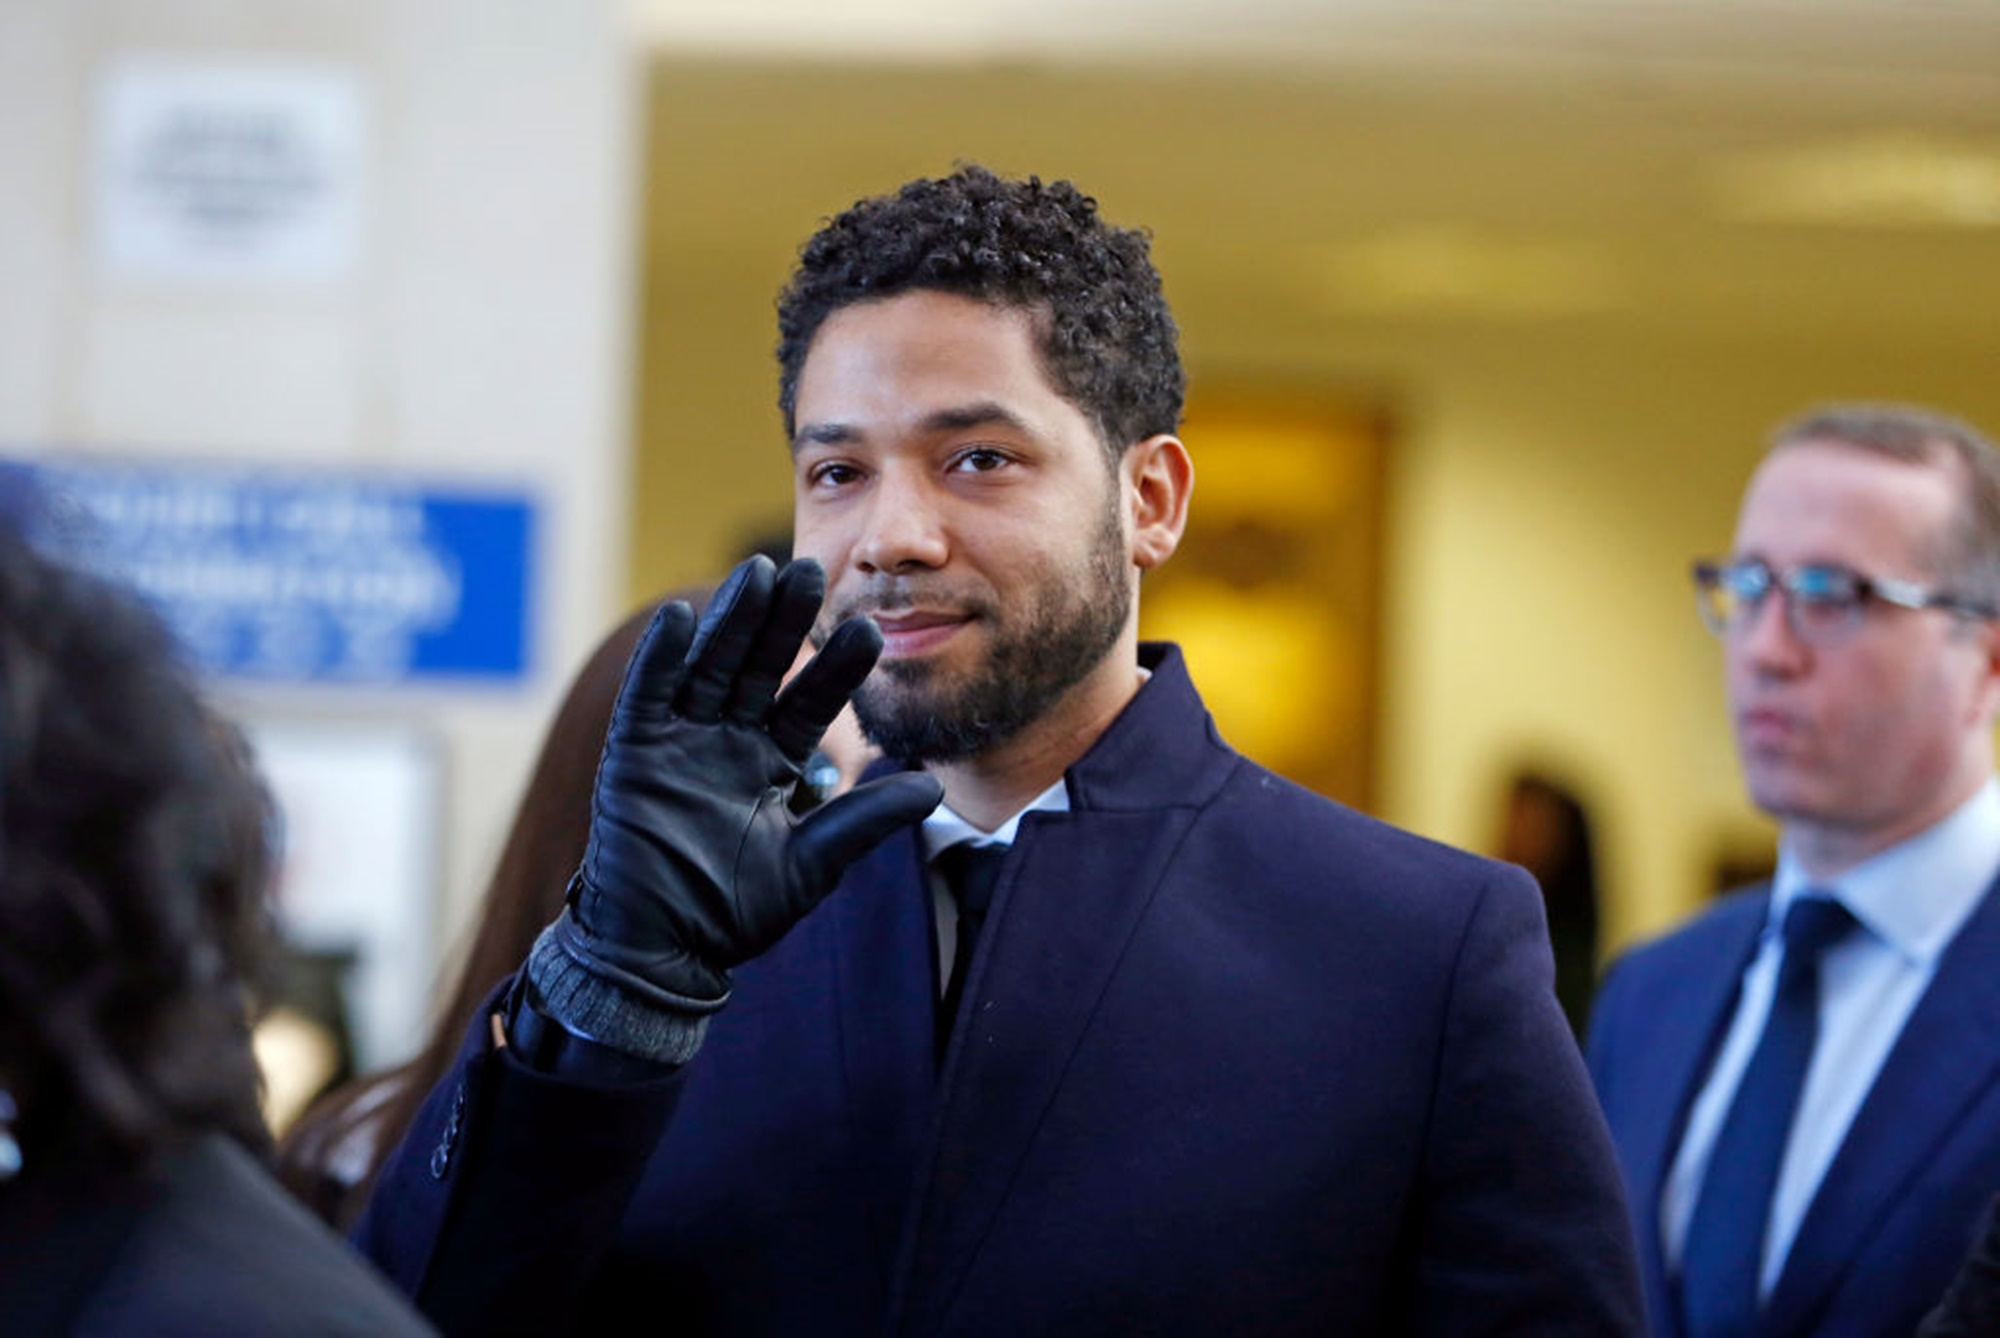 Jussie Smollett Kim Foxx City Of Chicago